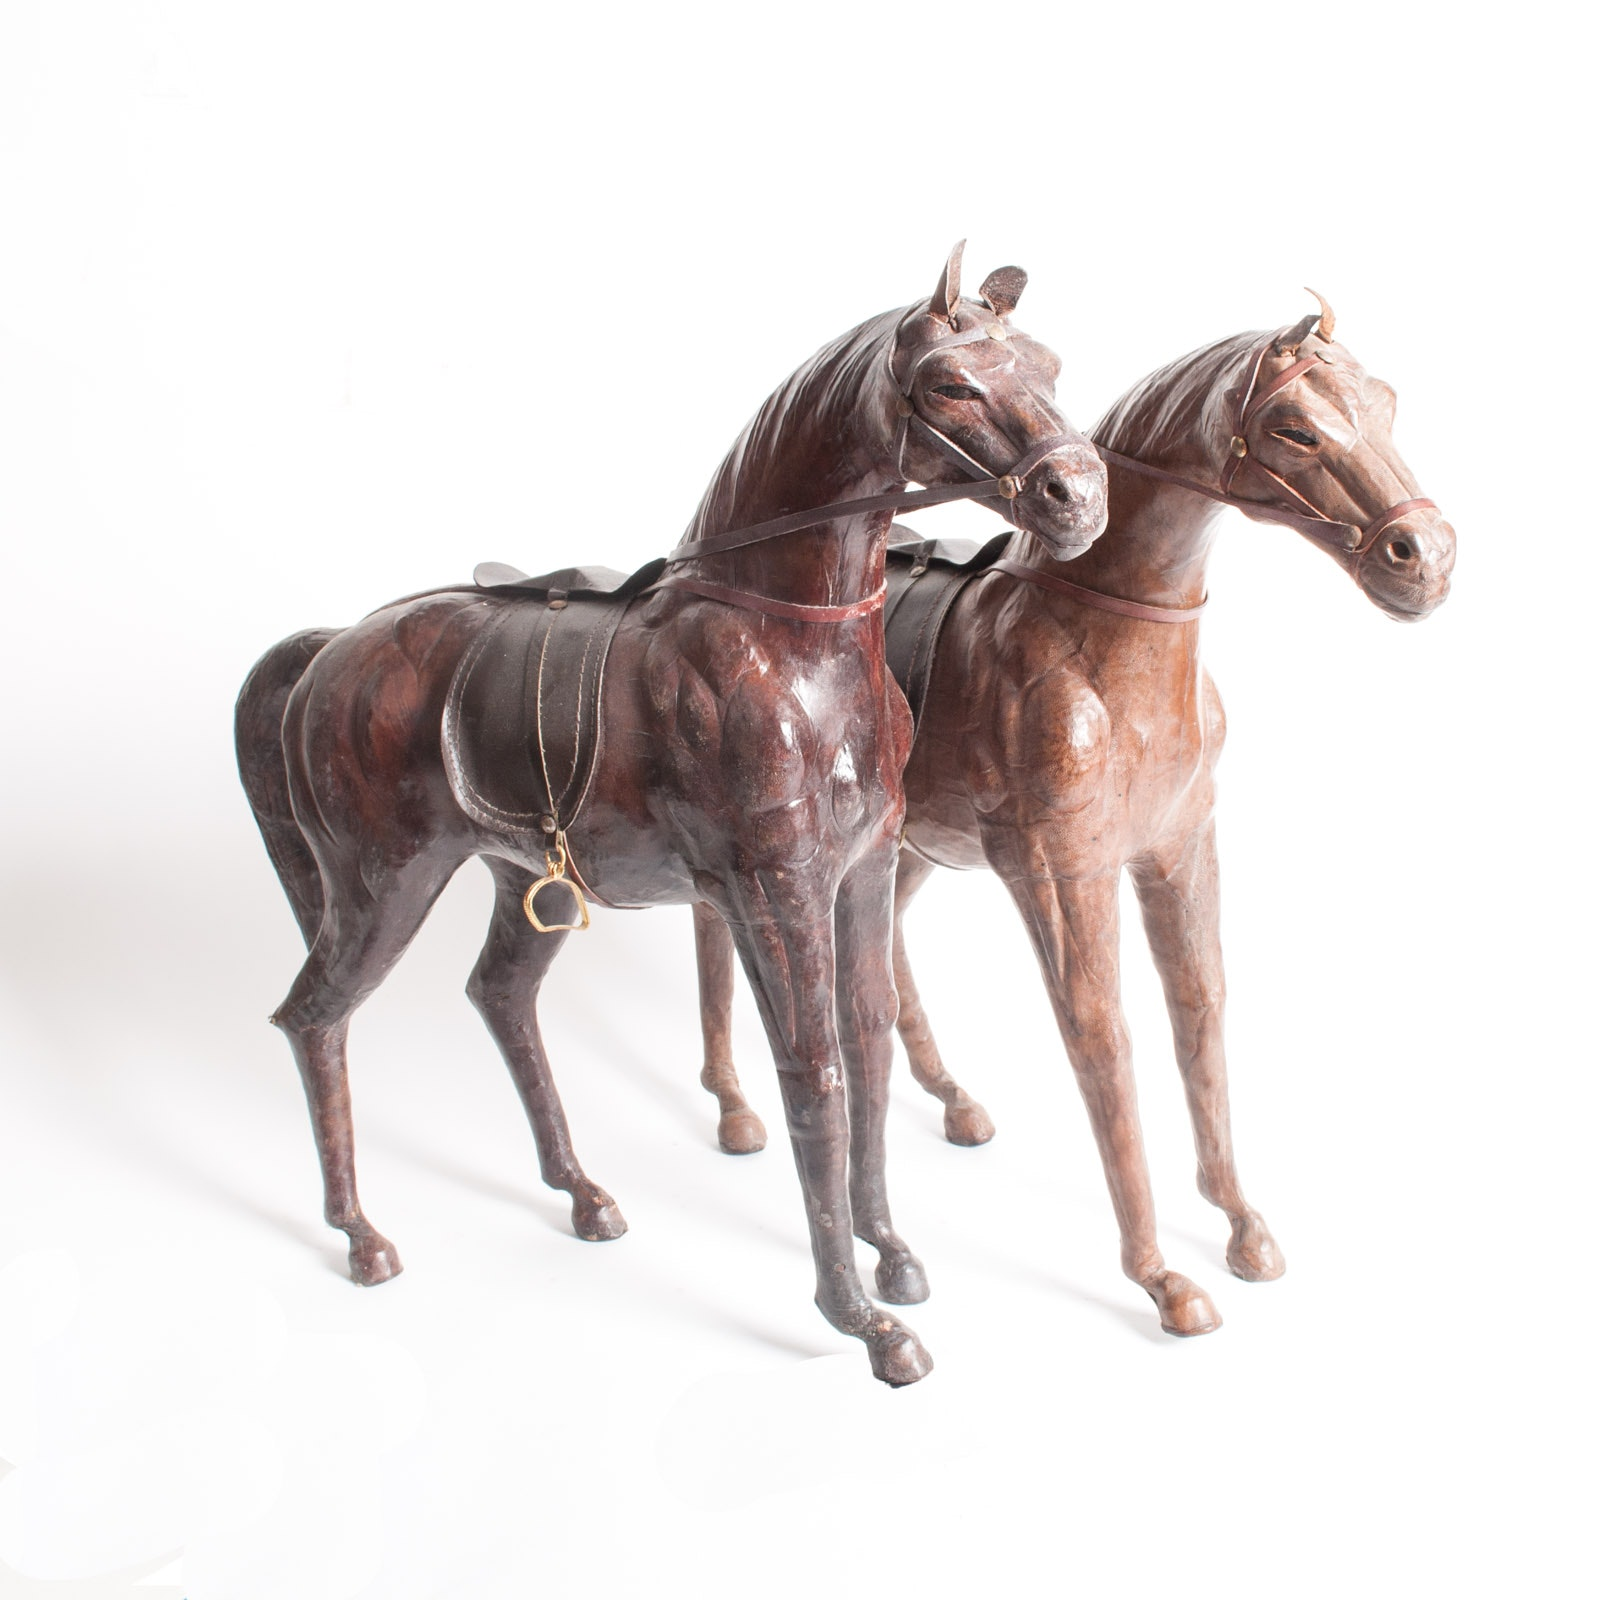 Pair of Vintage Leather Covered Horse Figurines